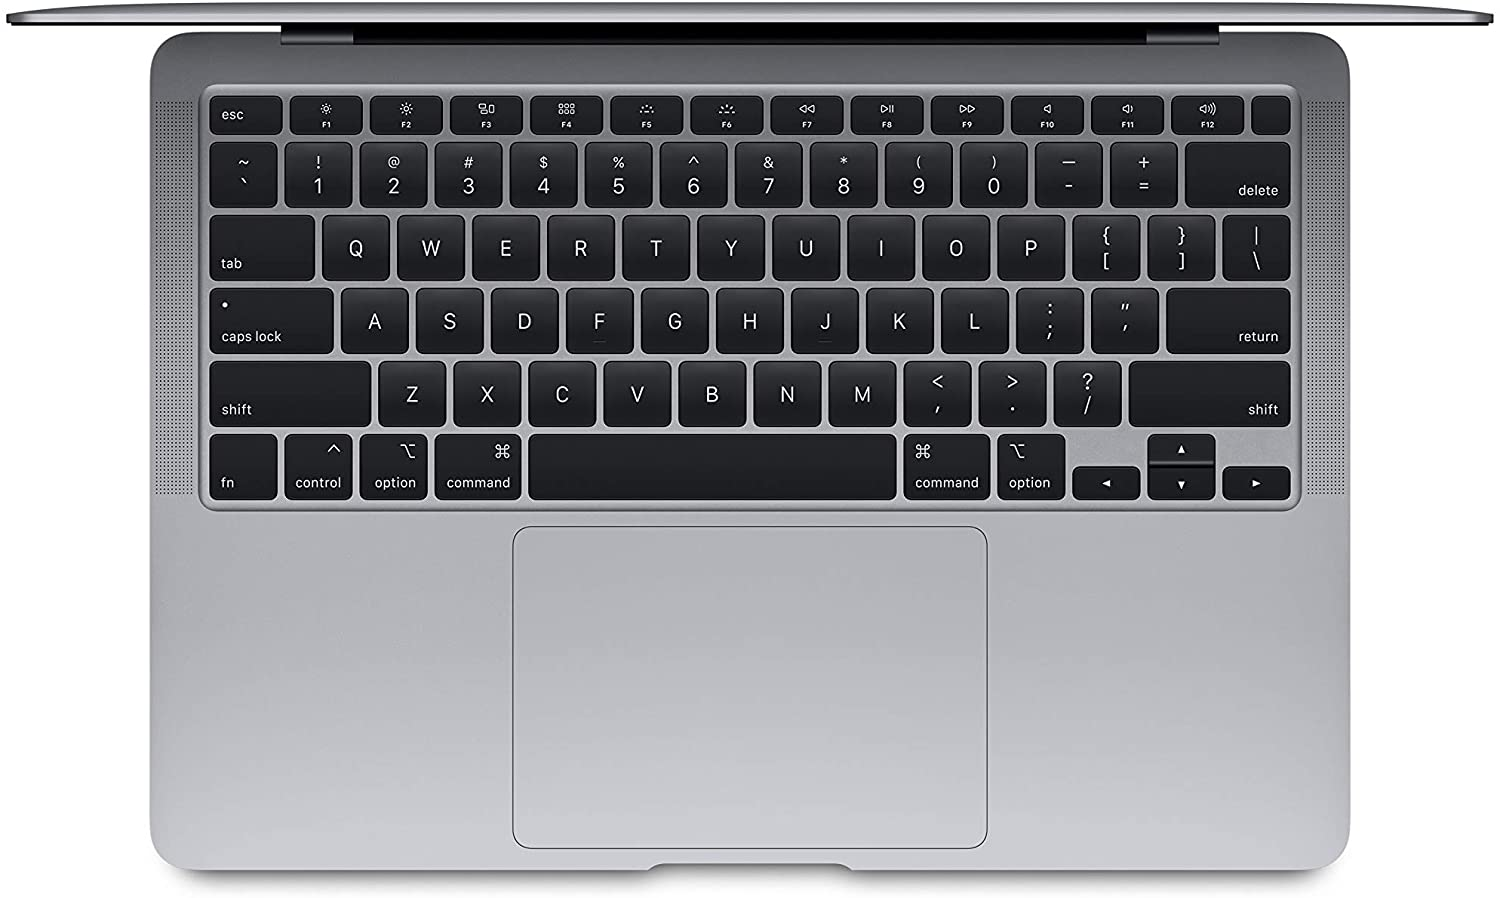 storage/backend/assets/images/product/1615537950CilQ-Mac-book-air-2.jpg